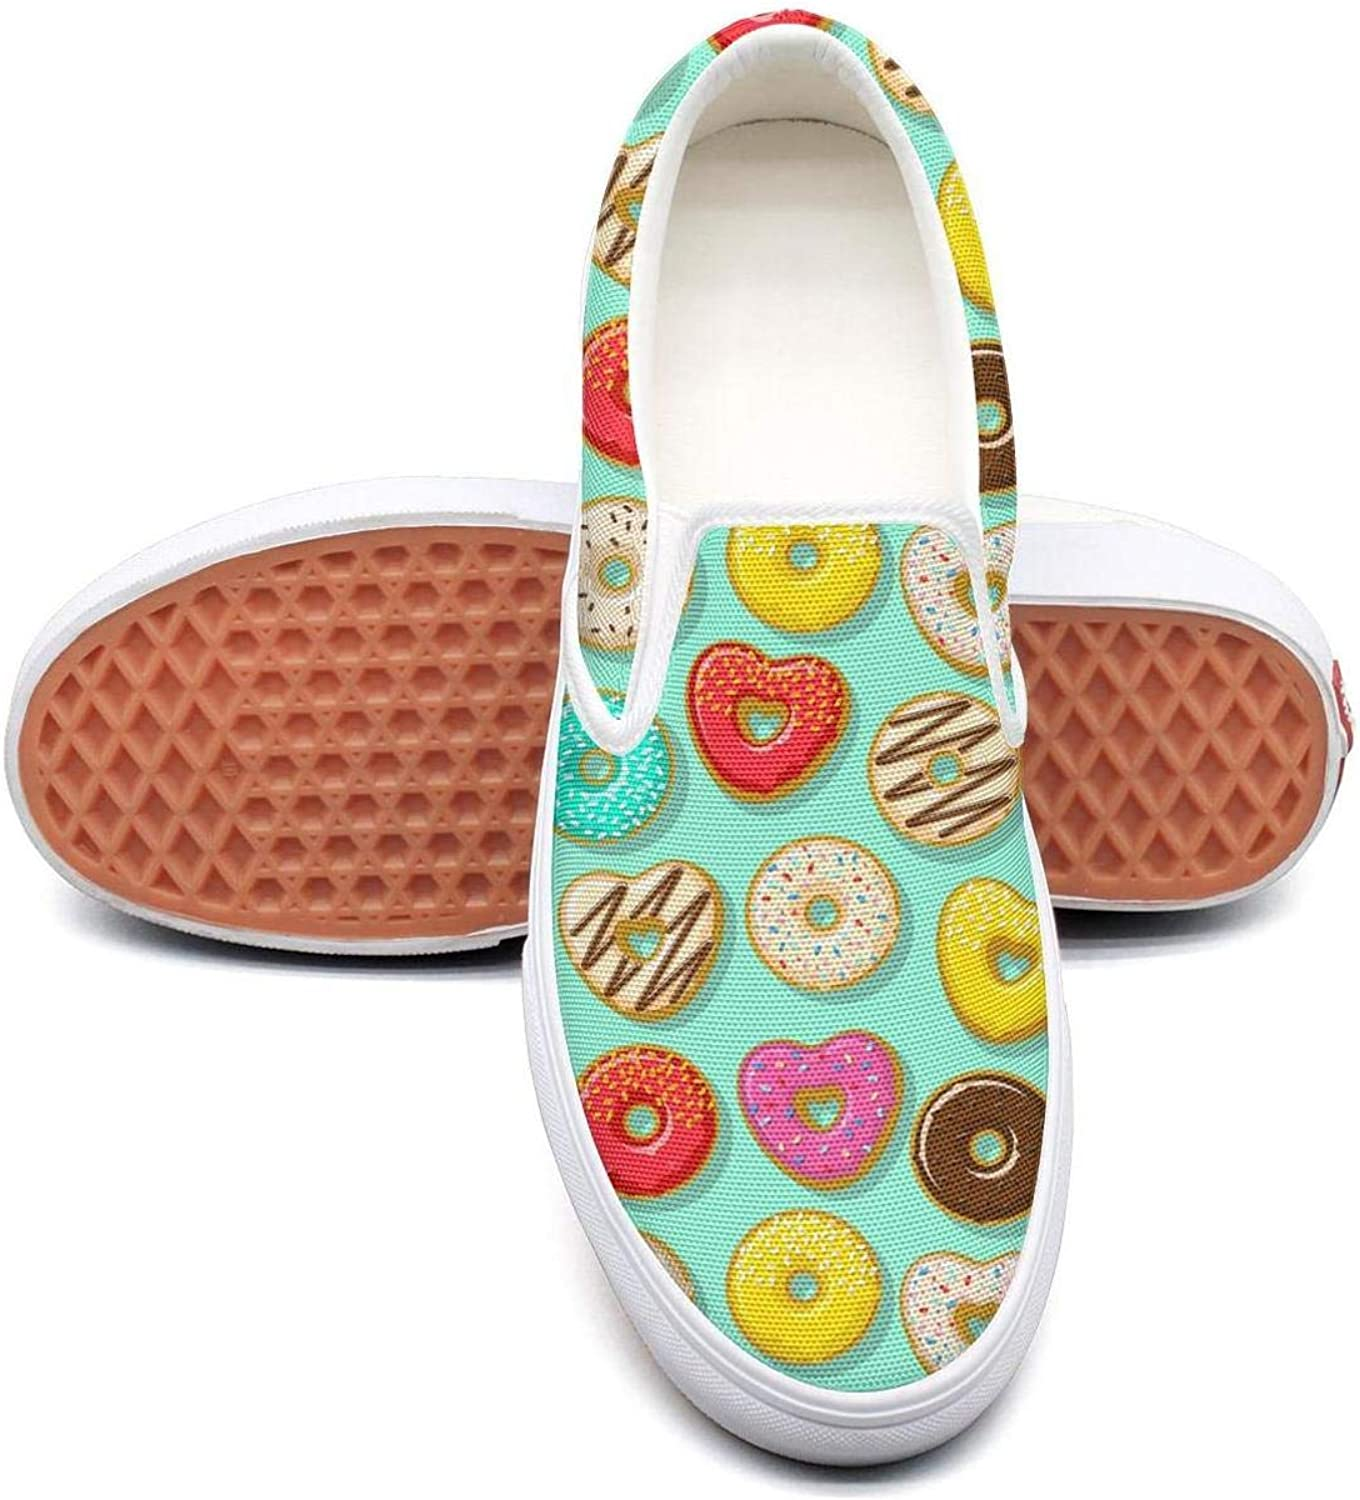 Lalige Pink red Mint Green Donut pop Heart Women Casual Canvas Slip-ONS Sneakers shoes